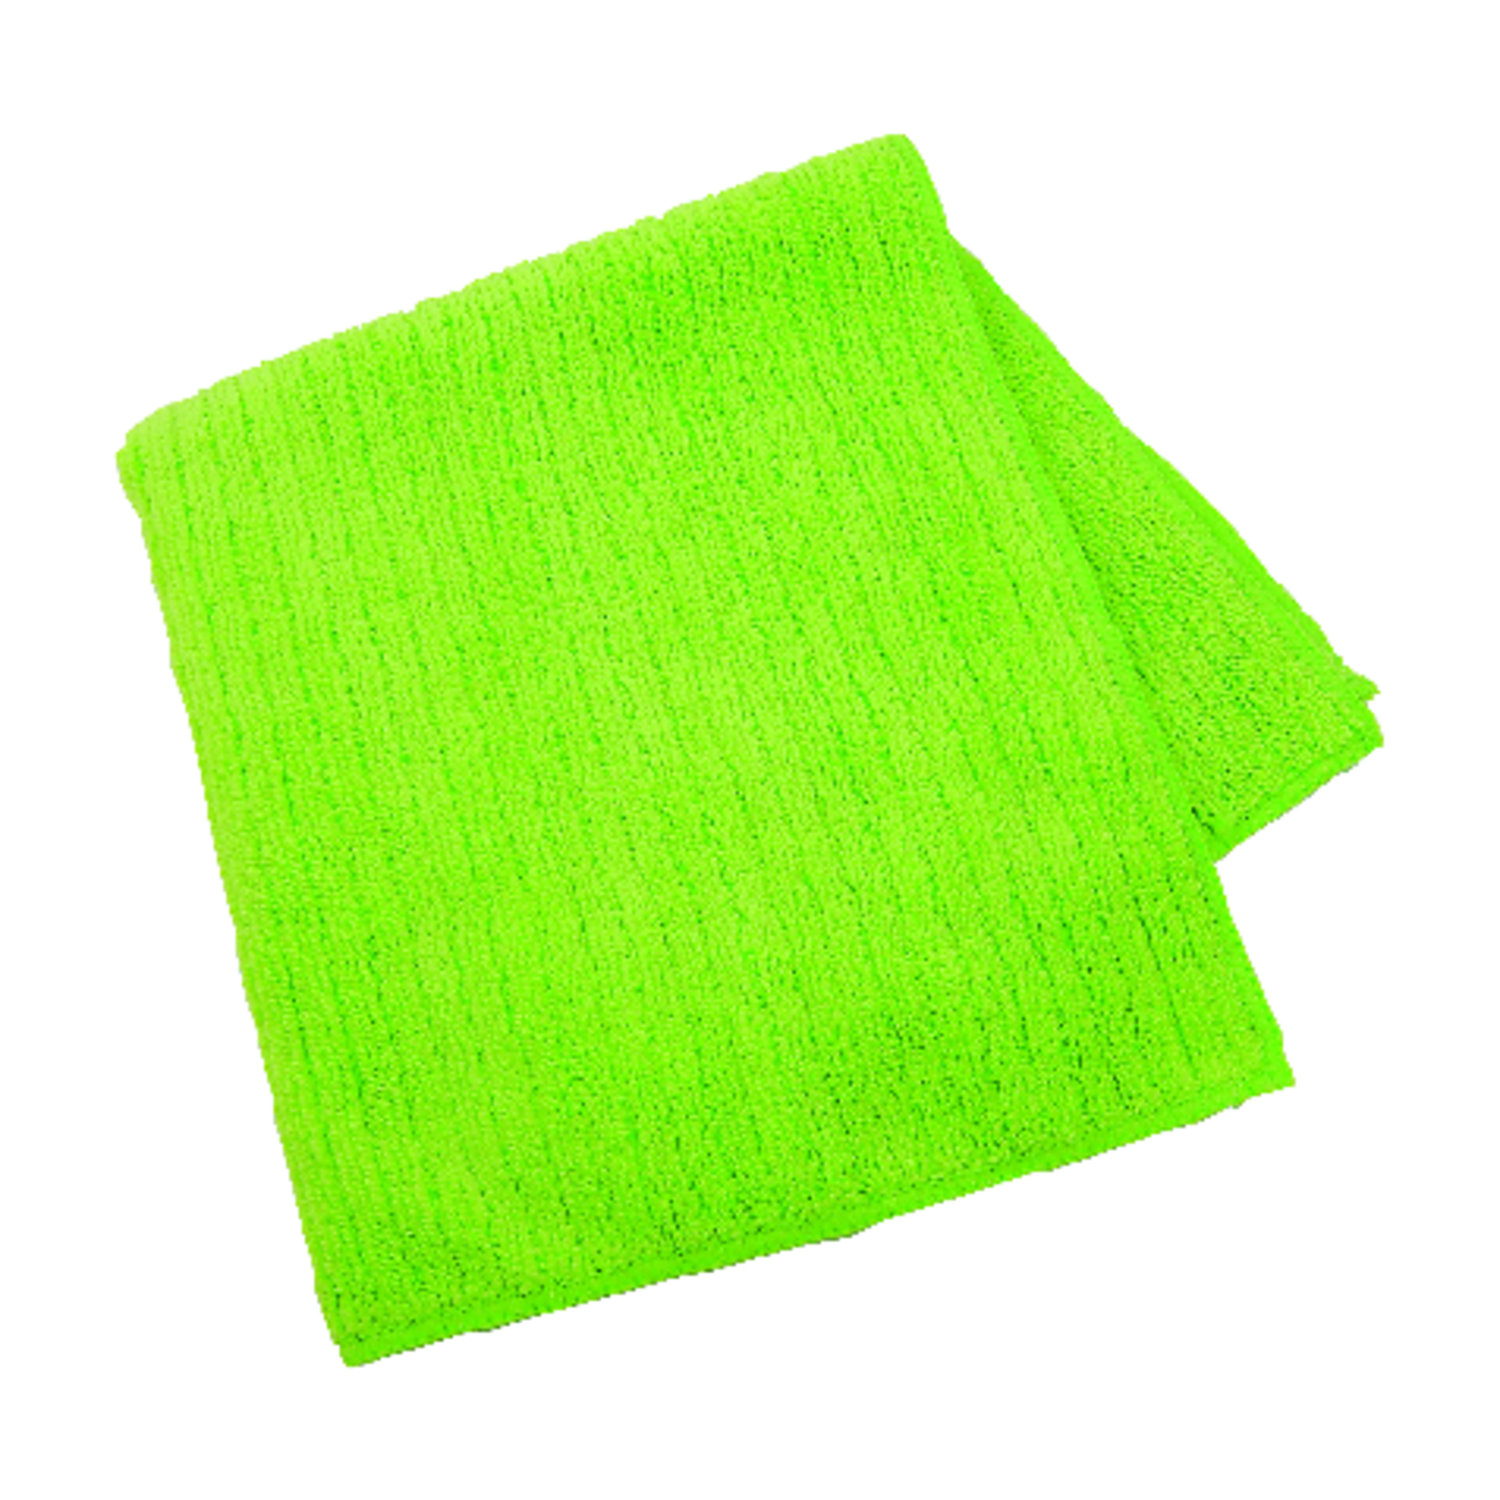 Quickie Home Pro  Kitchen & Bath  Microfiber  Cleaning Cloth  13 in. W x 15 in. L 1 pk